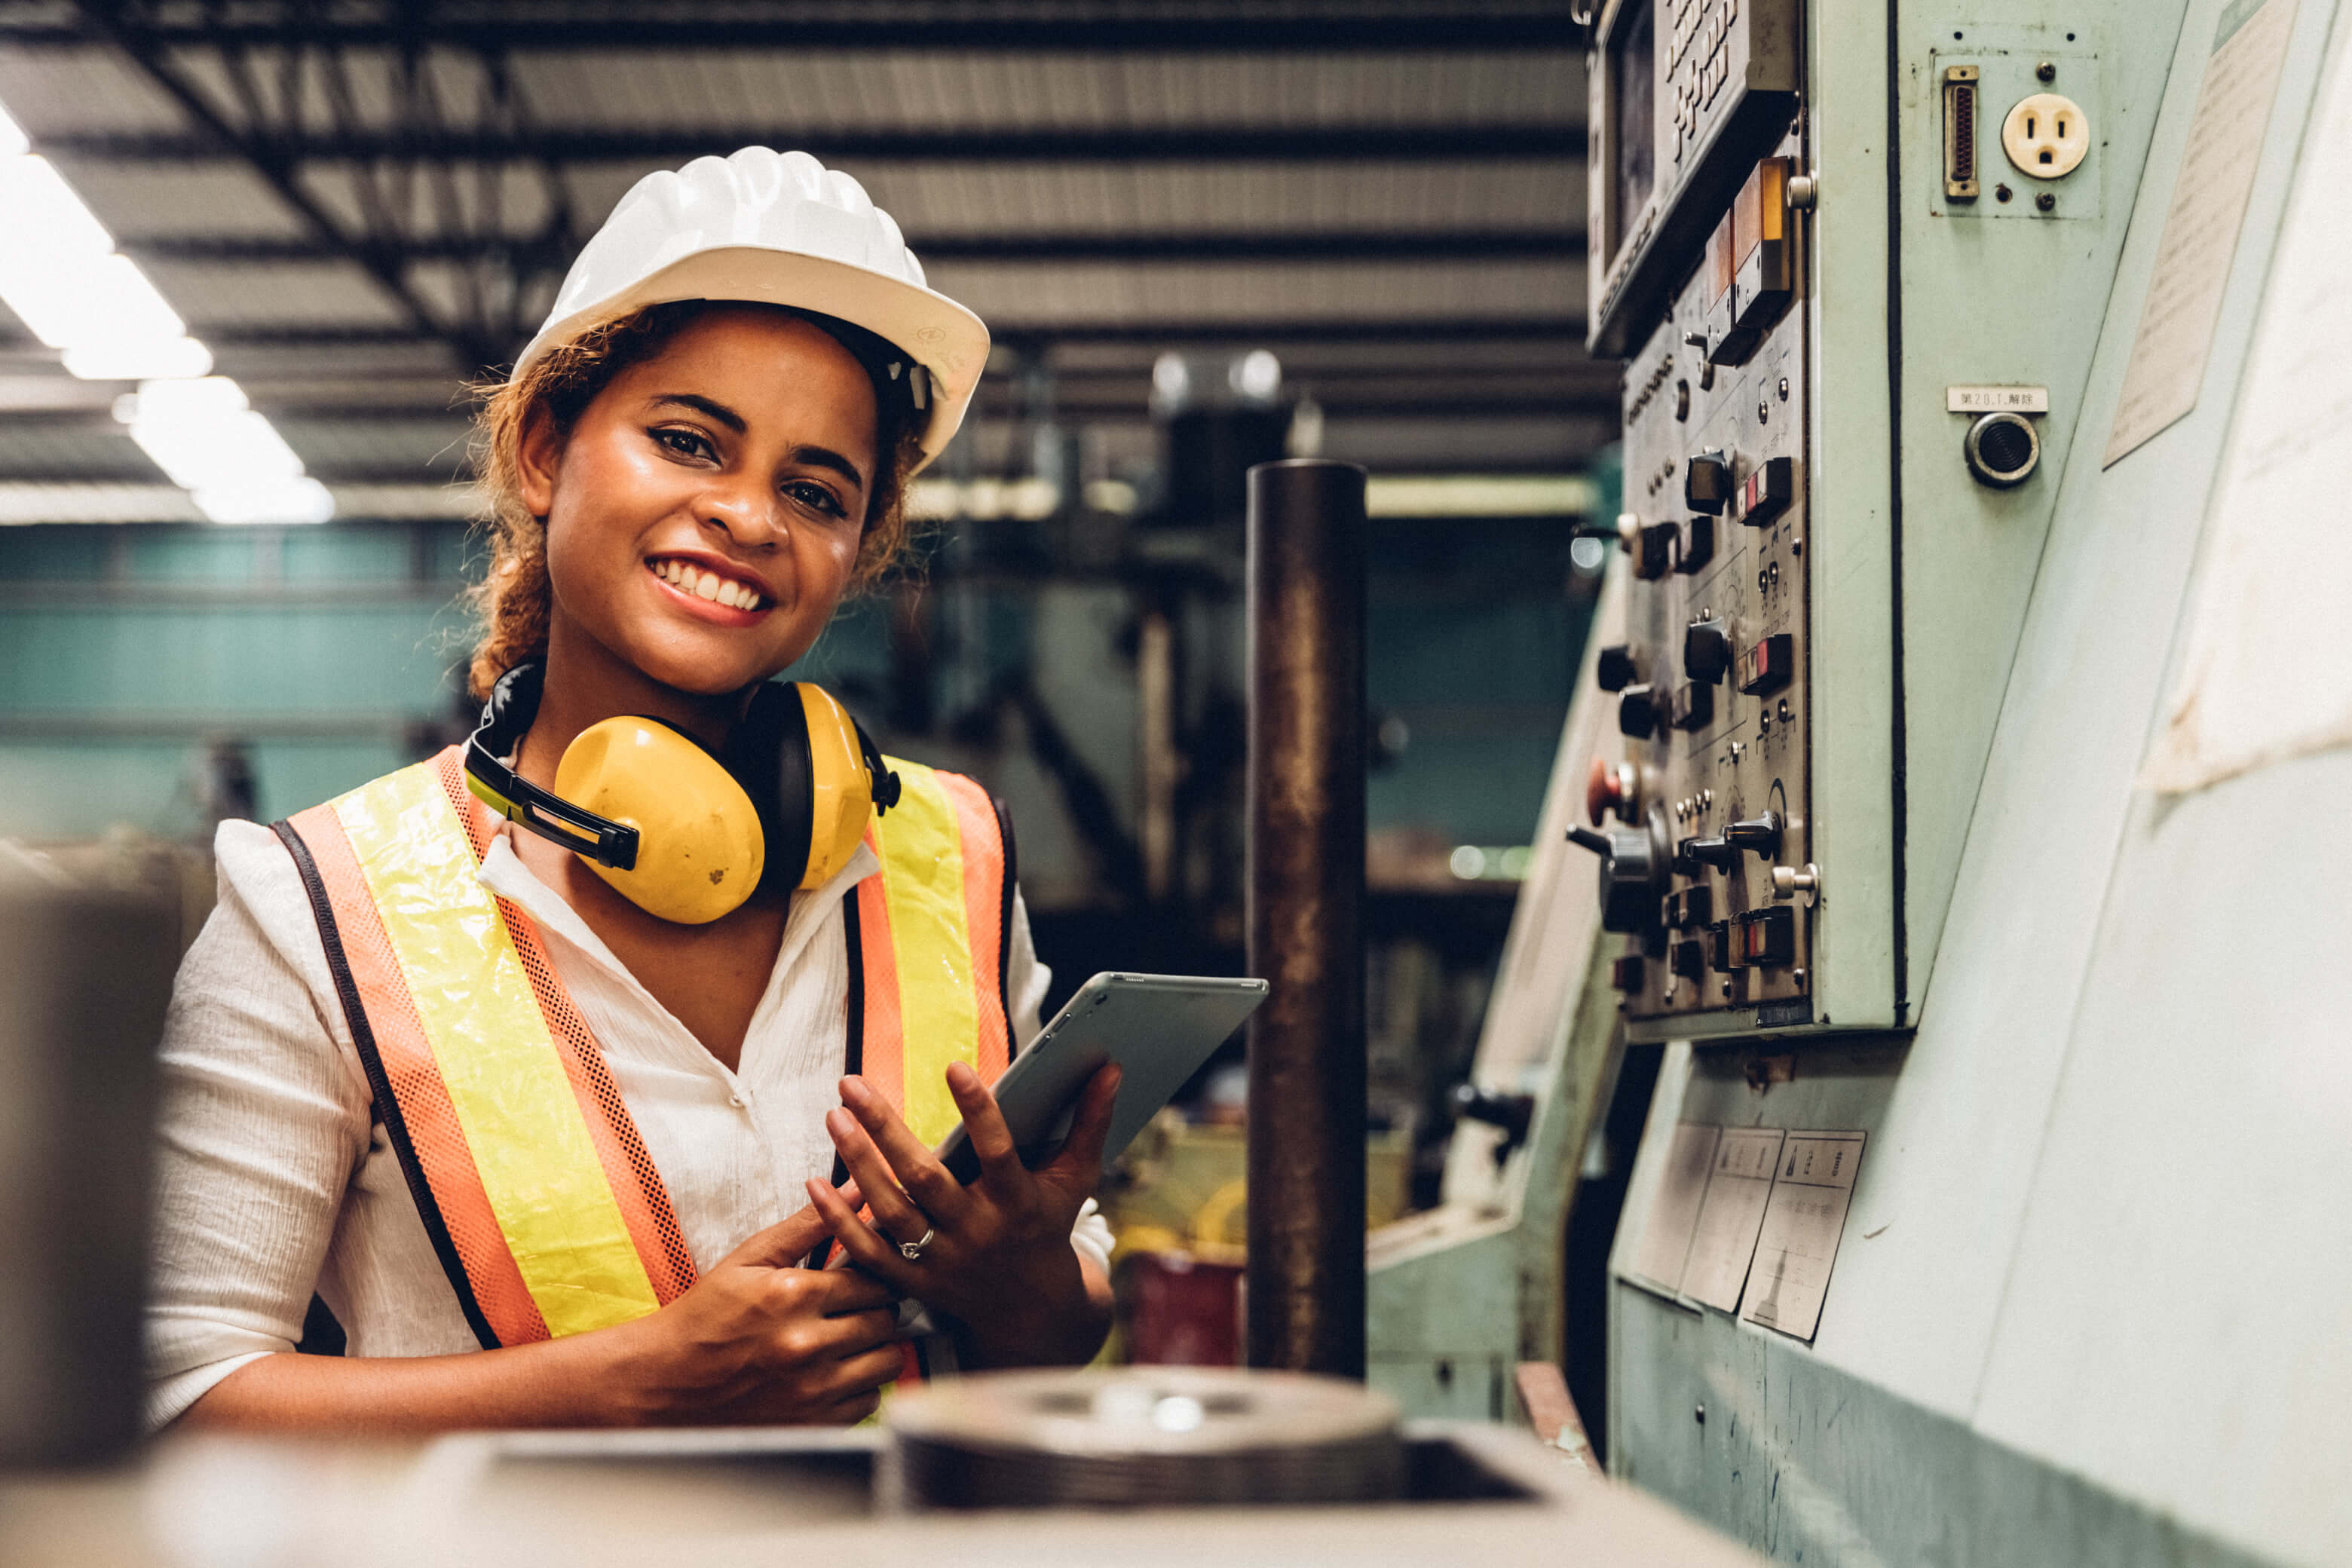 Female maintenance worker in a factory smiling and holding tablet